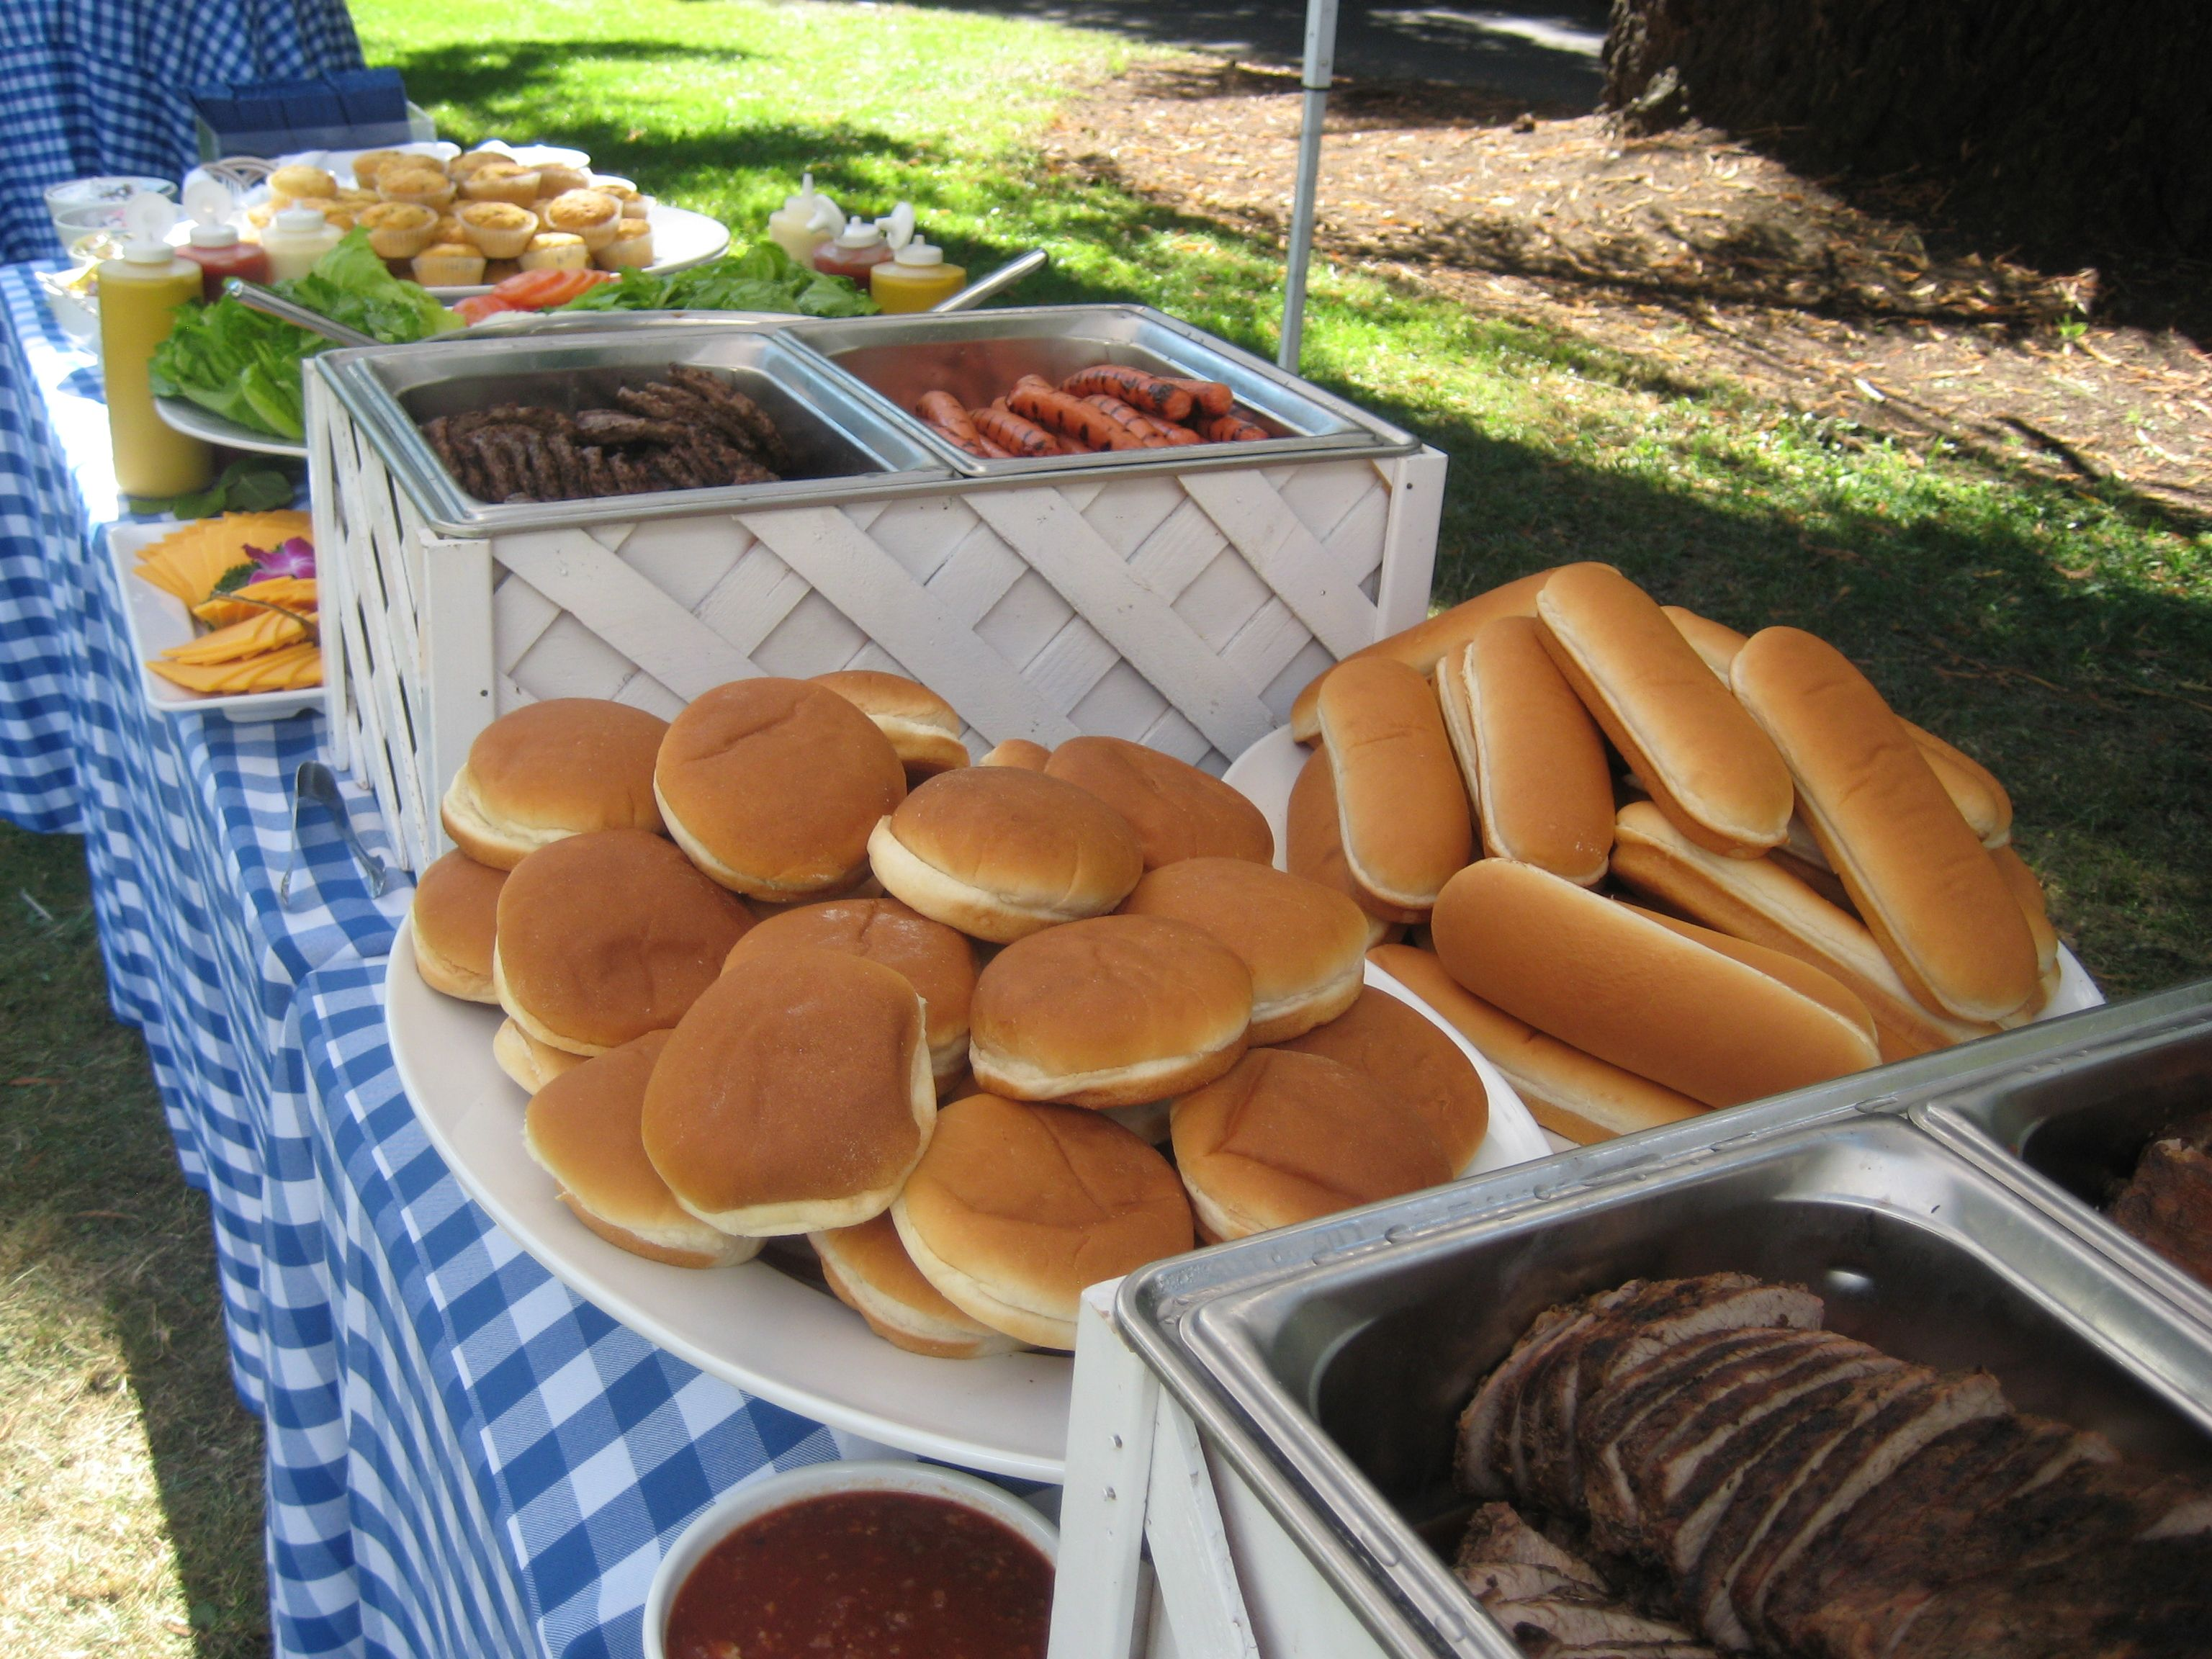 Burgers And Hot Dogs This Is Our White Buffet Equipment